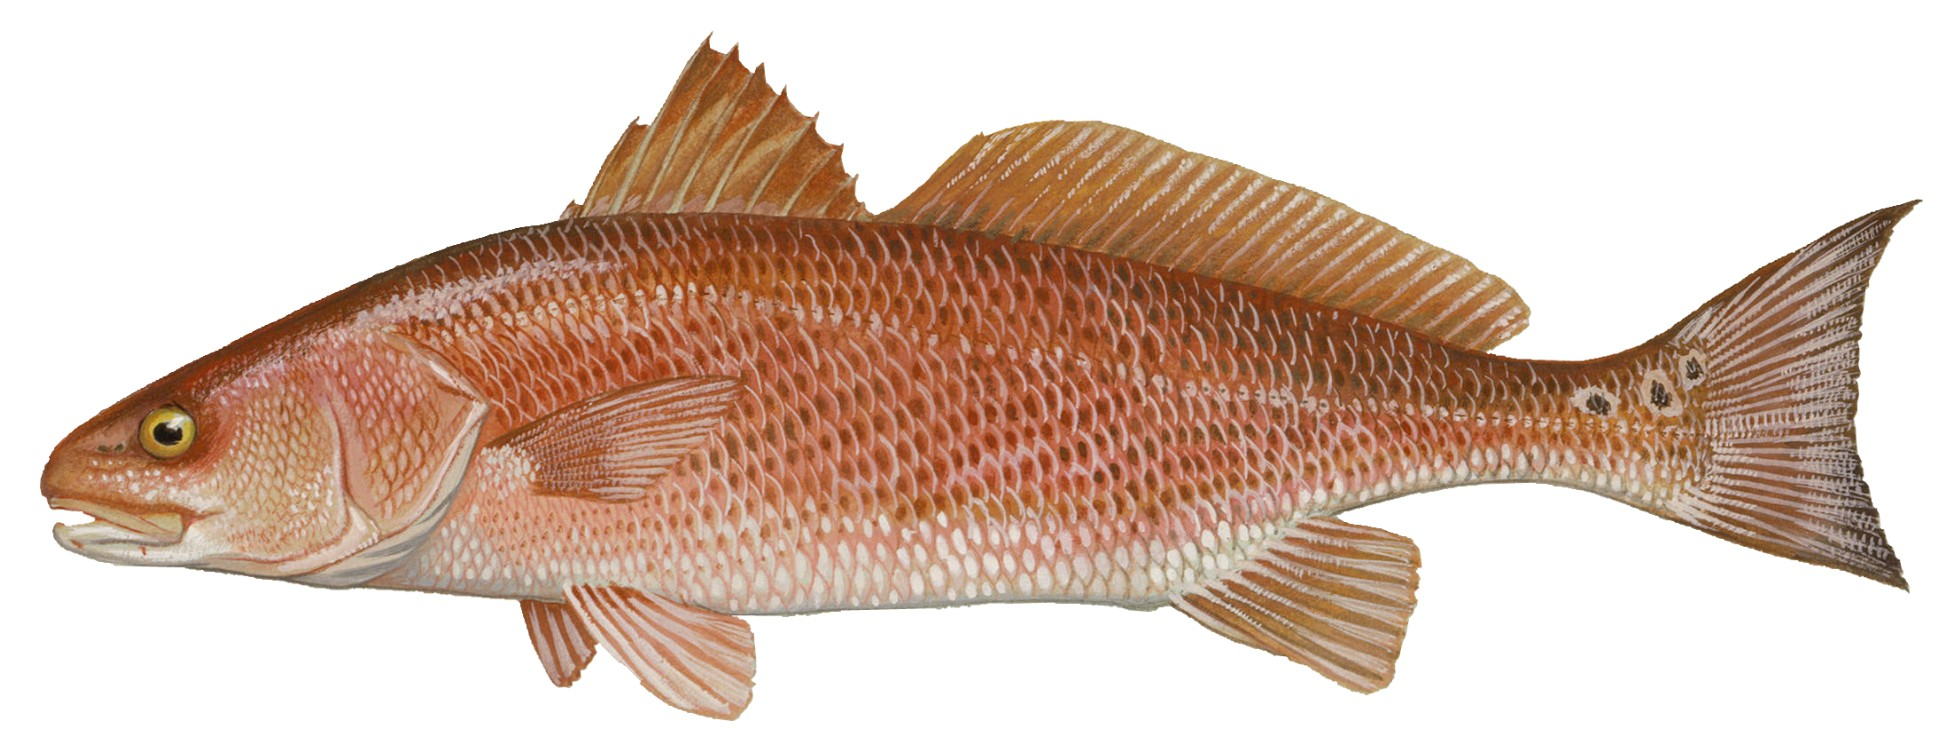 Red drum rendering. Image by Duane Raver / U.S. Fish and Wildlife Service.